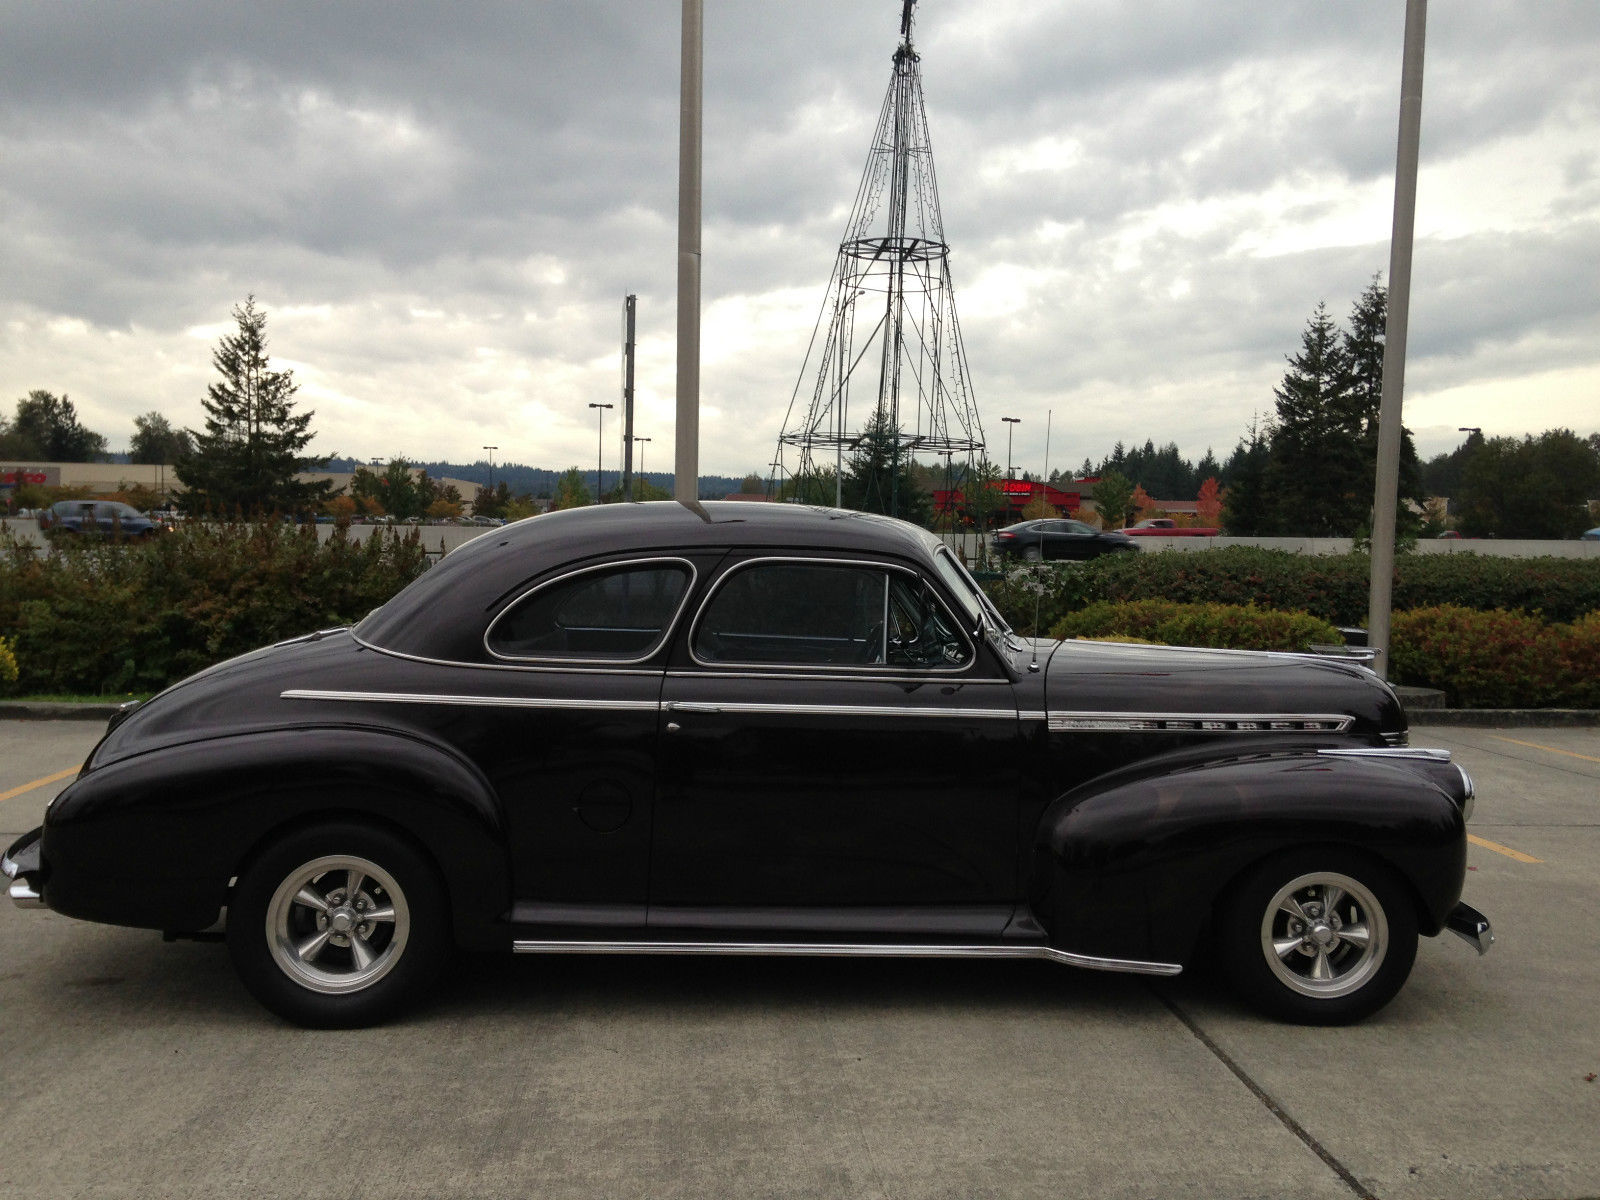 Fabulous 41 Chevy Coupe.jpg